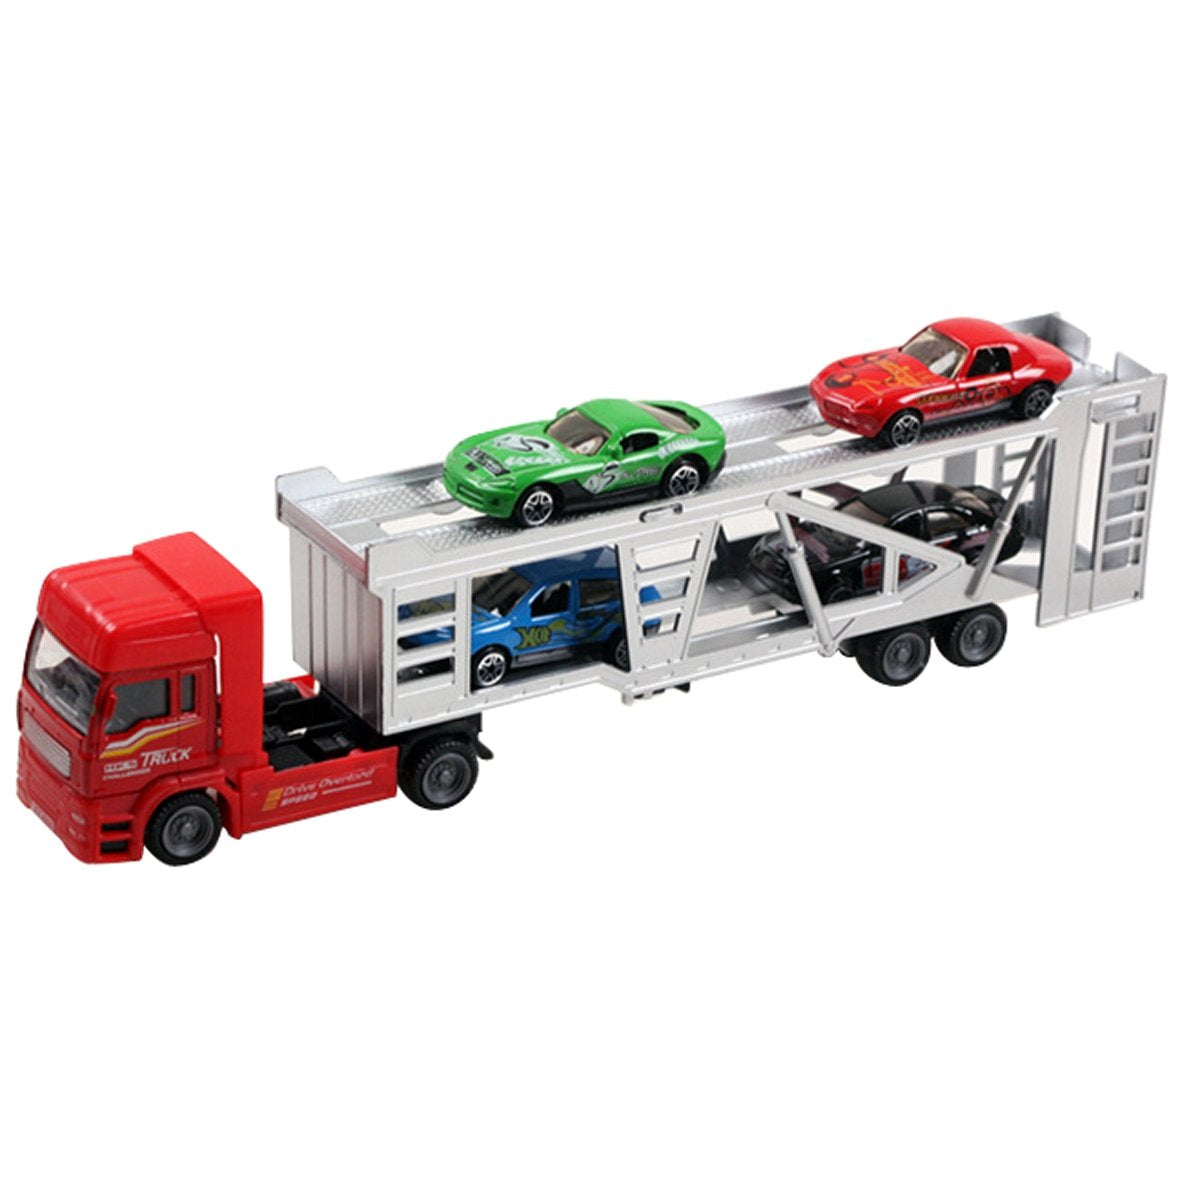 Aivtalk Transport Trailer Car Carrier Truck Toy for Boys (includes 4 Cars) - Multicolor